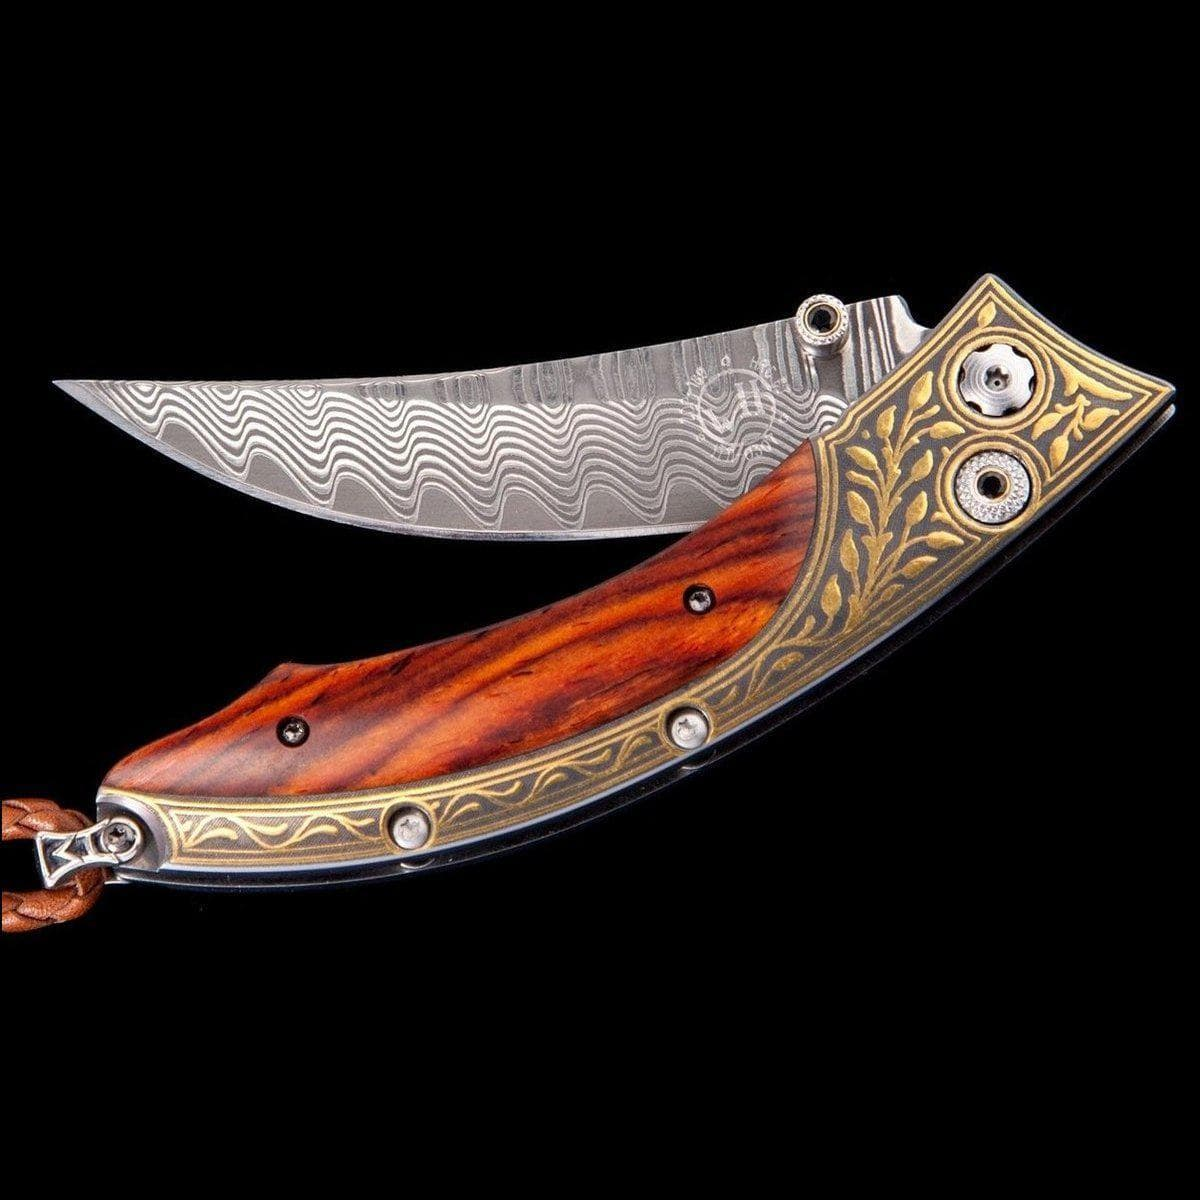 Persian Dominica Limited Edition Knife - B11 DOMINICA-William Henry-Renee Taylor Gallery